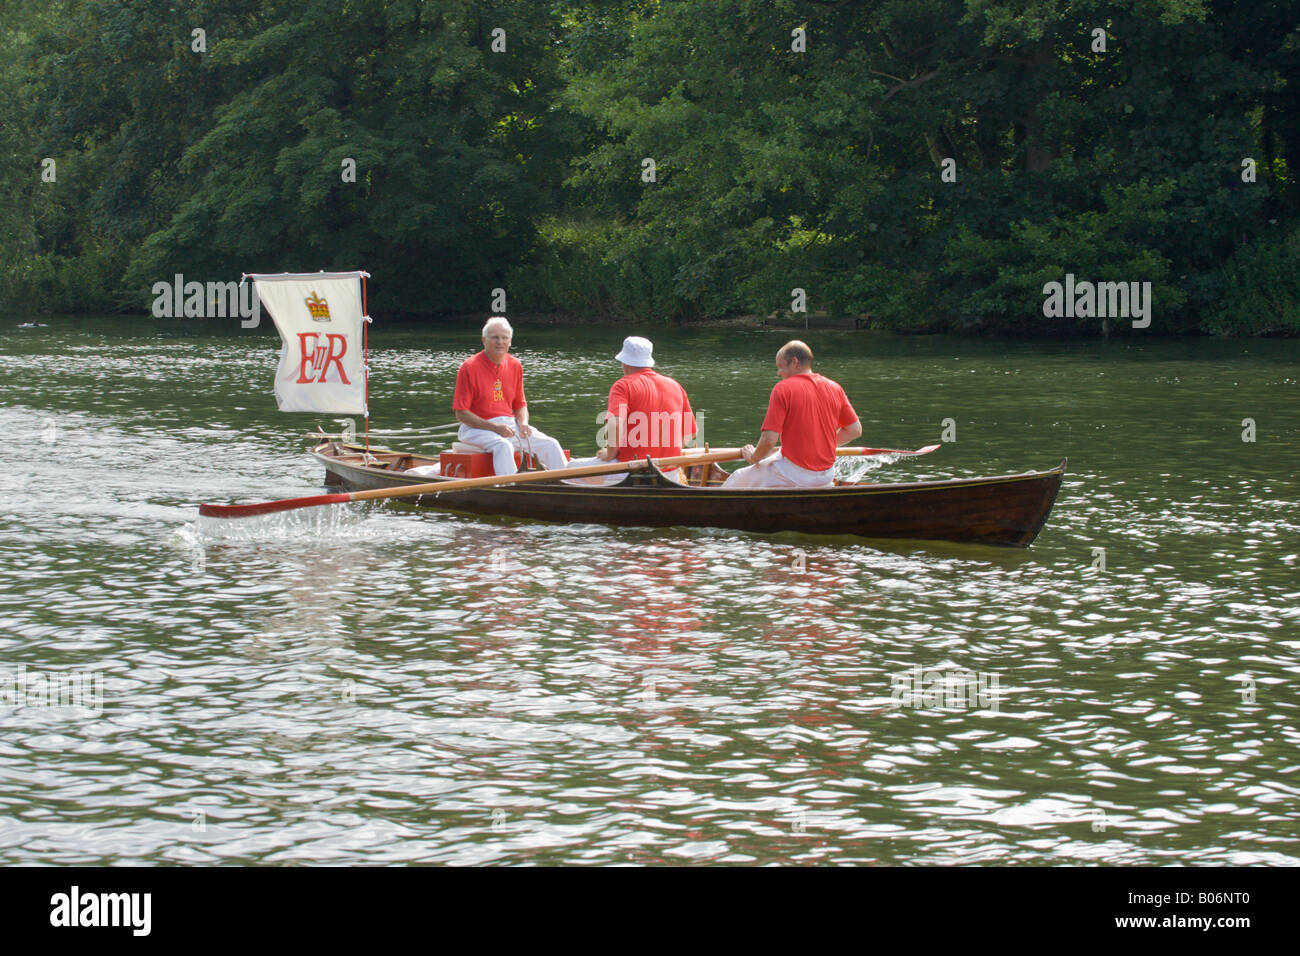 Swan upping on the River Thames One of Her Majesty Queen Elizabeth's skiffs - Stock Image